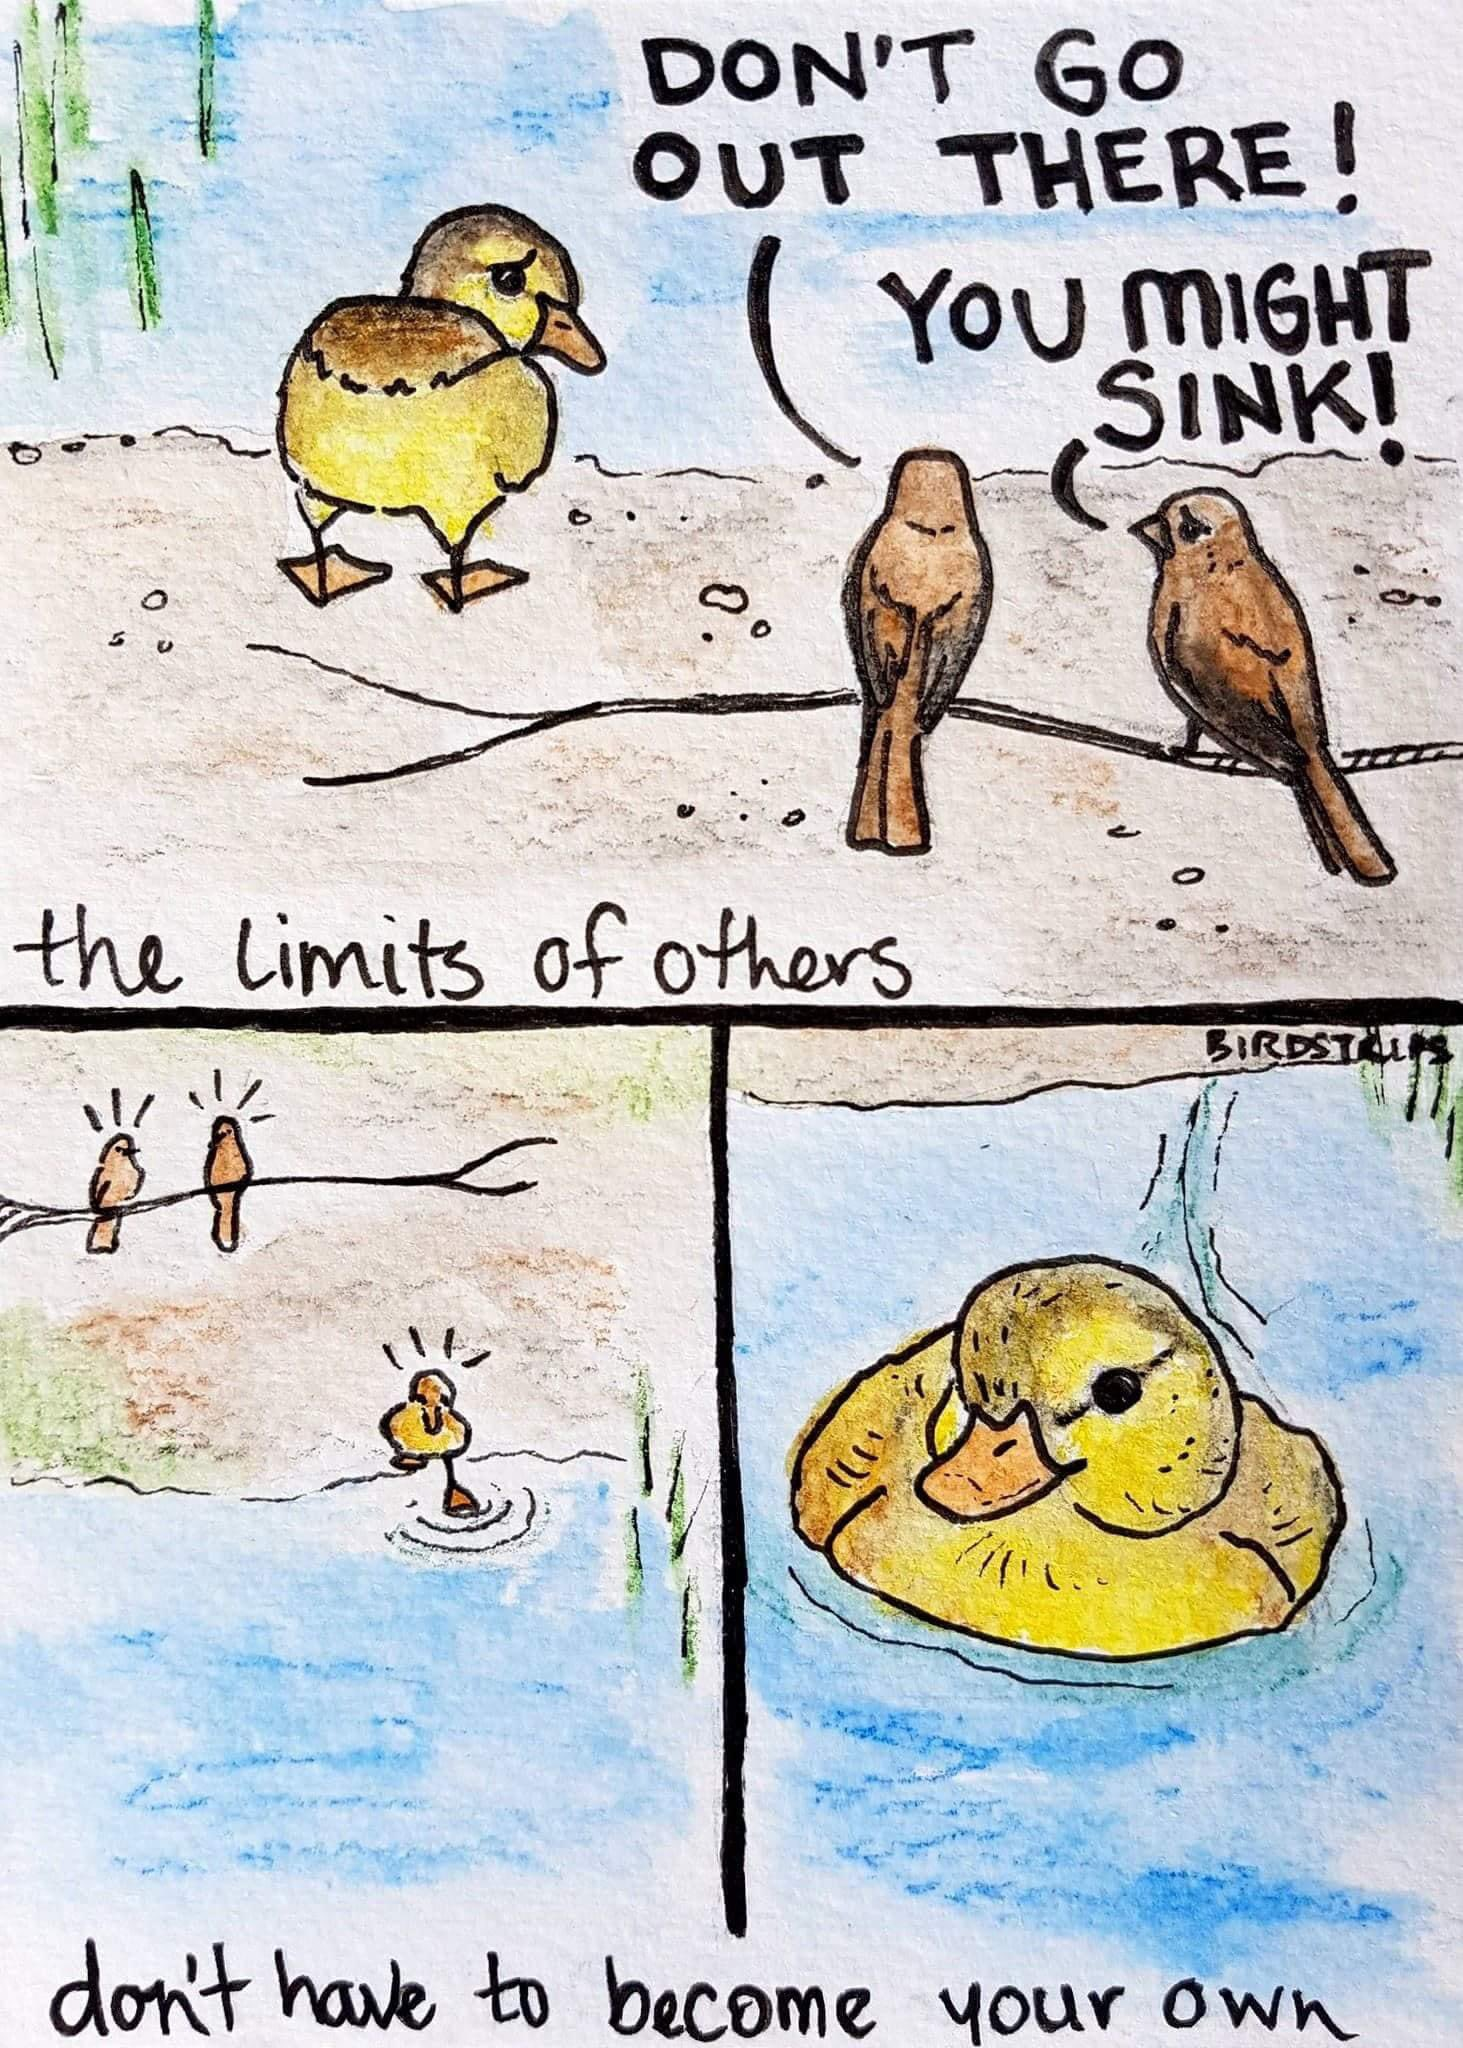 [Image] Don't compare others to yourself, it does nothing but hinder progress